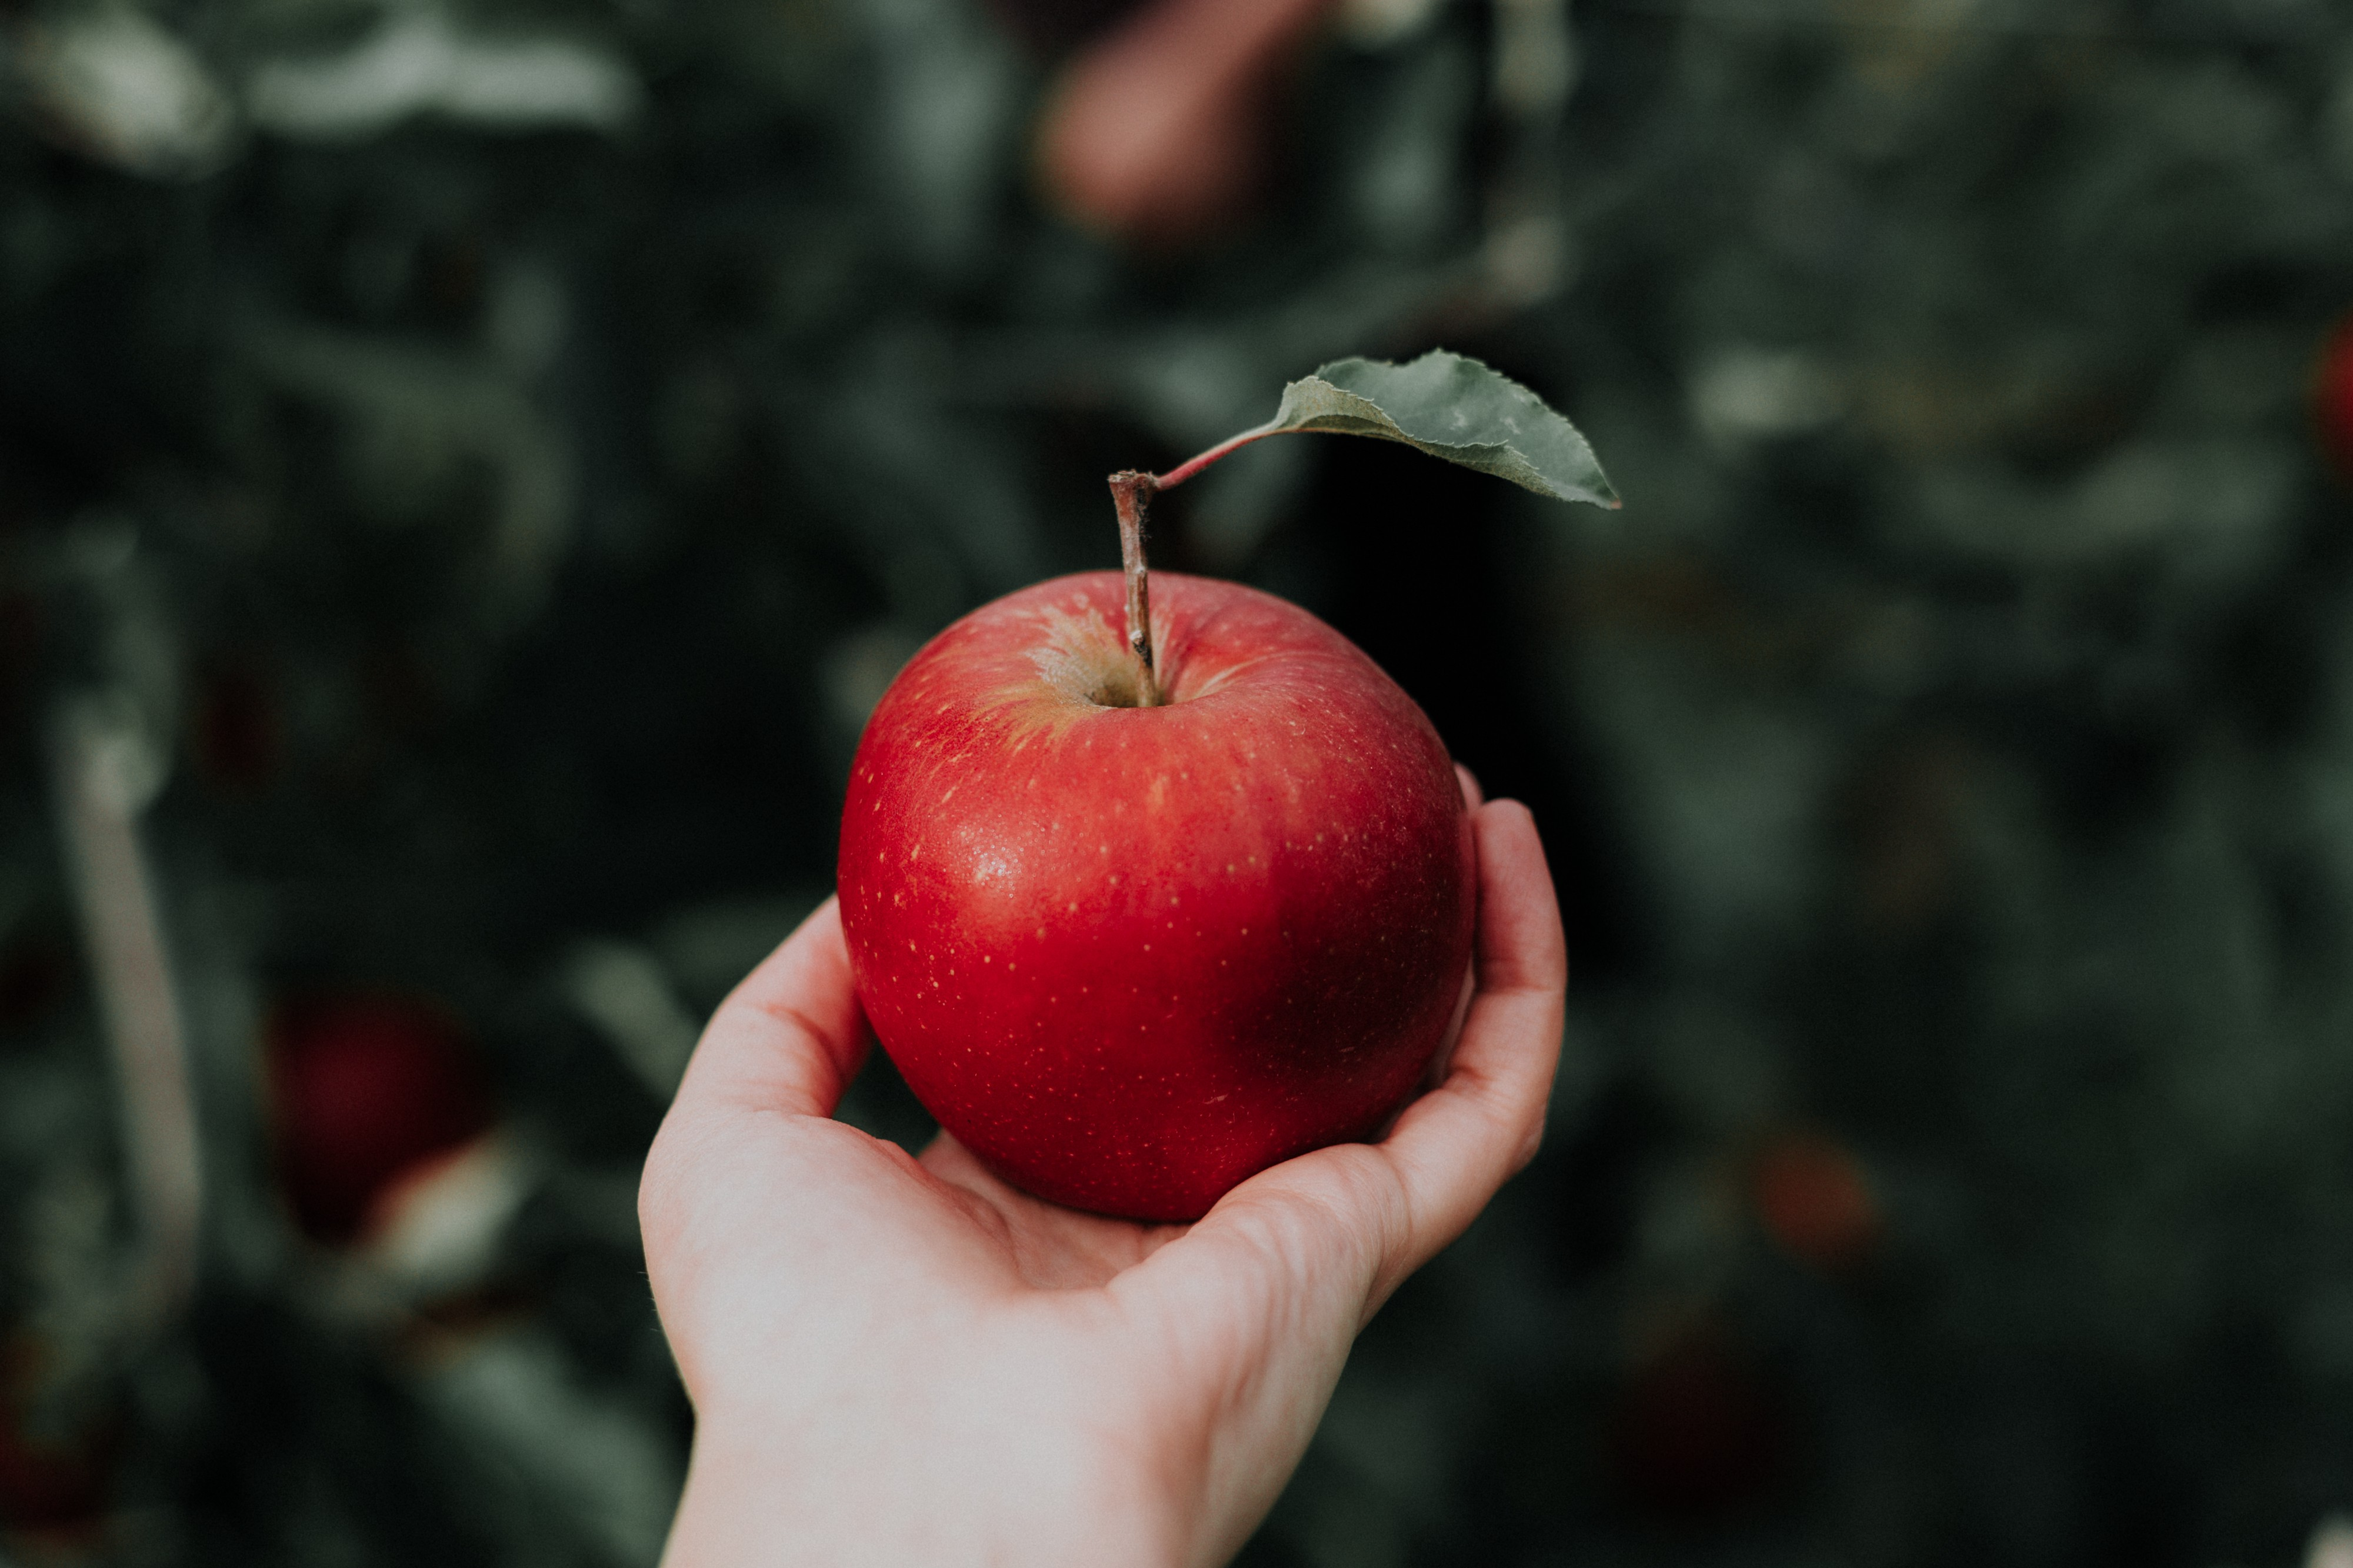 An apple held out in a hand